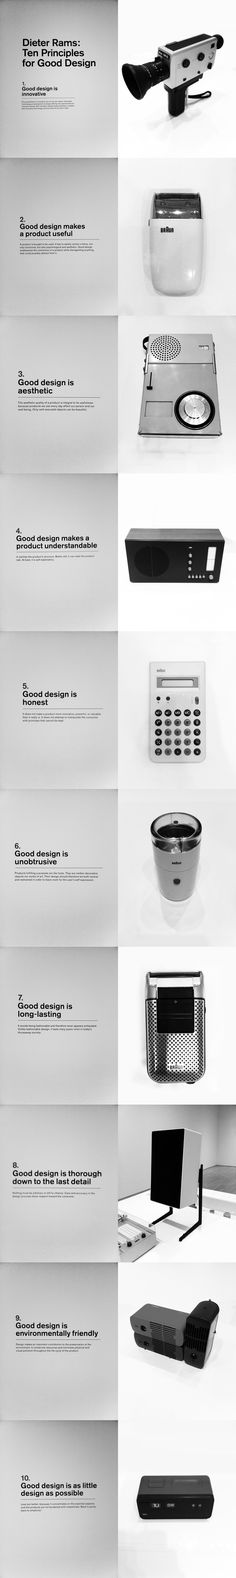 Deiter Rams: Ten Principles for Good Design.